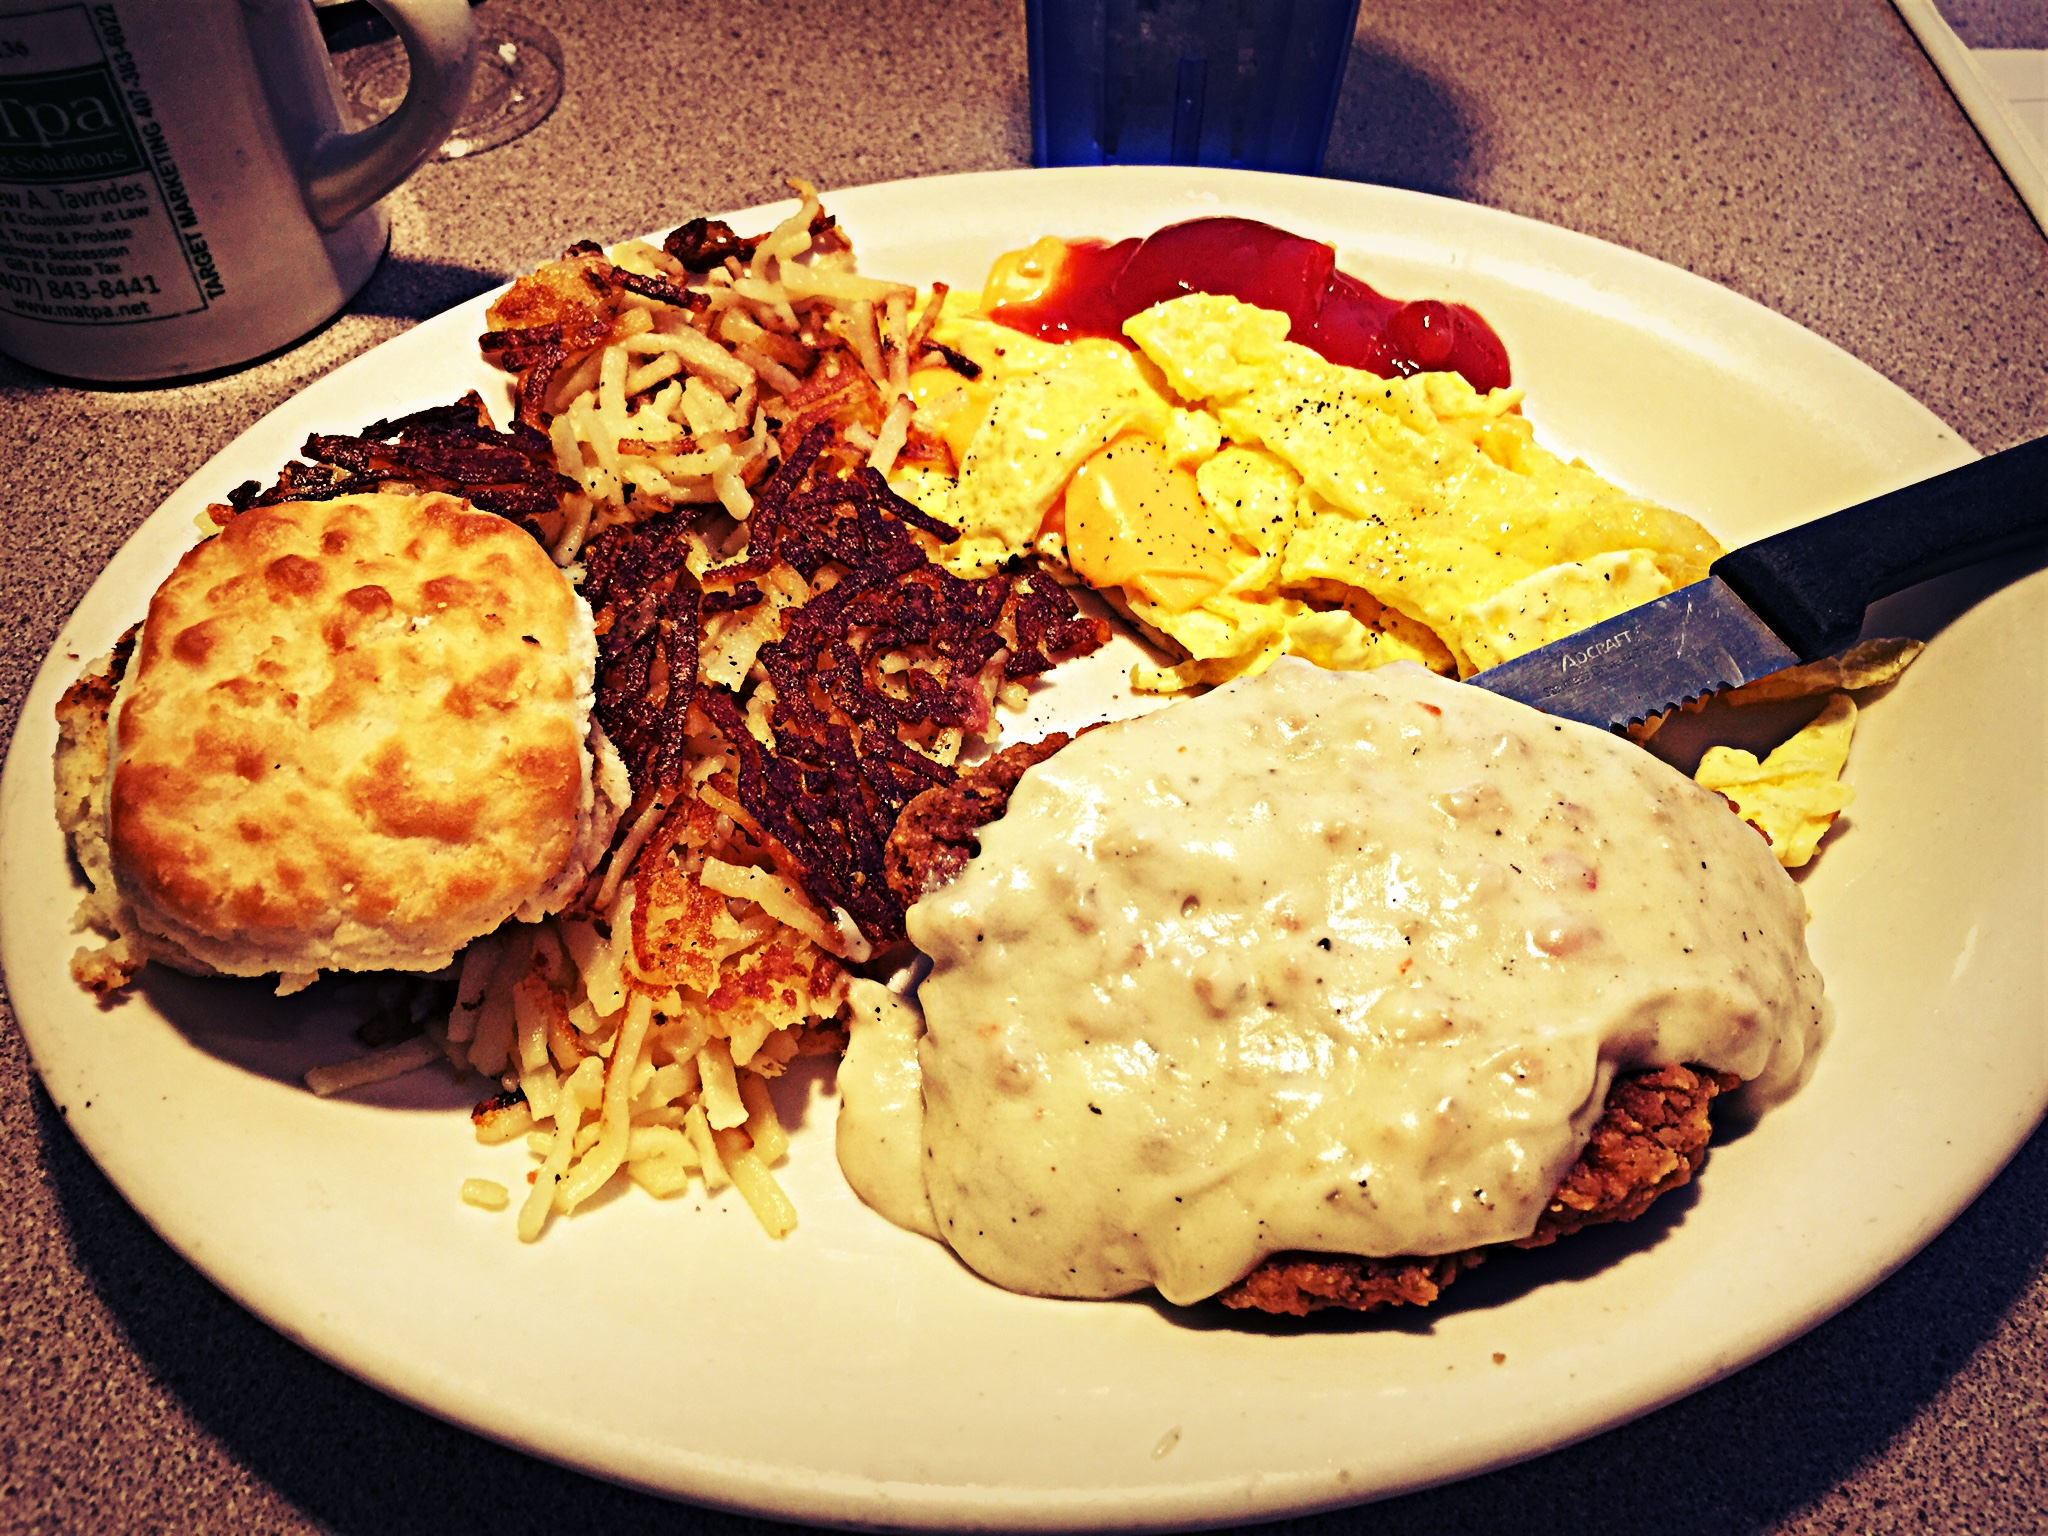 Christos Country fried chicken and gravy with eggs, hashbrowns and a grilled biscuit